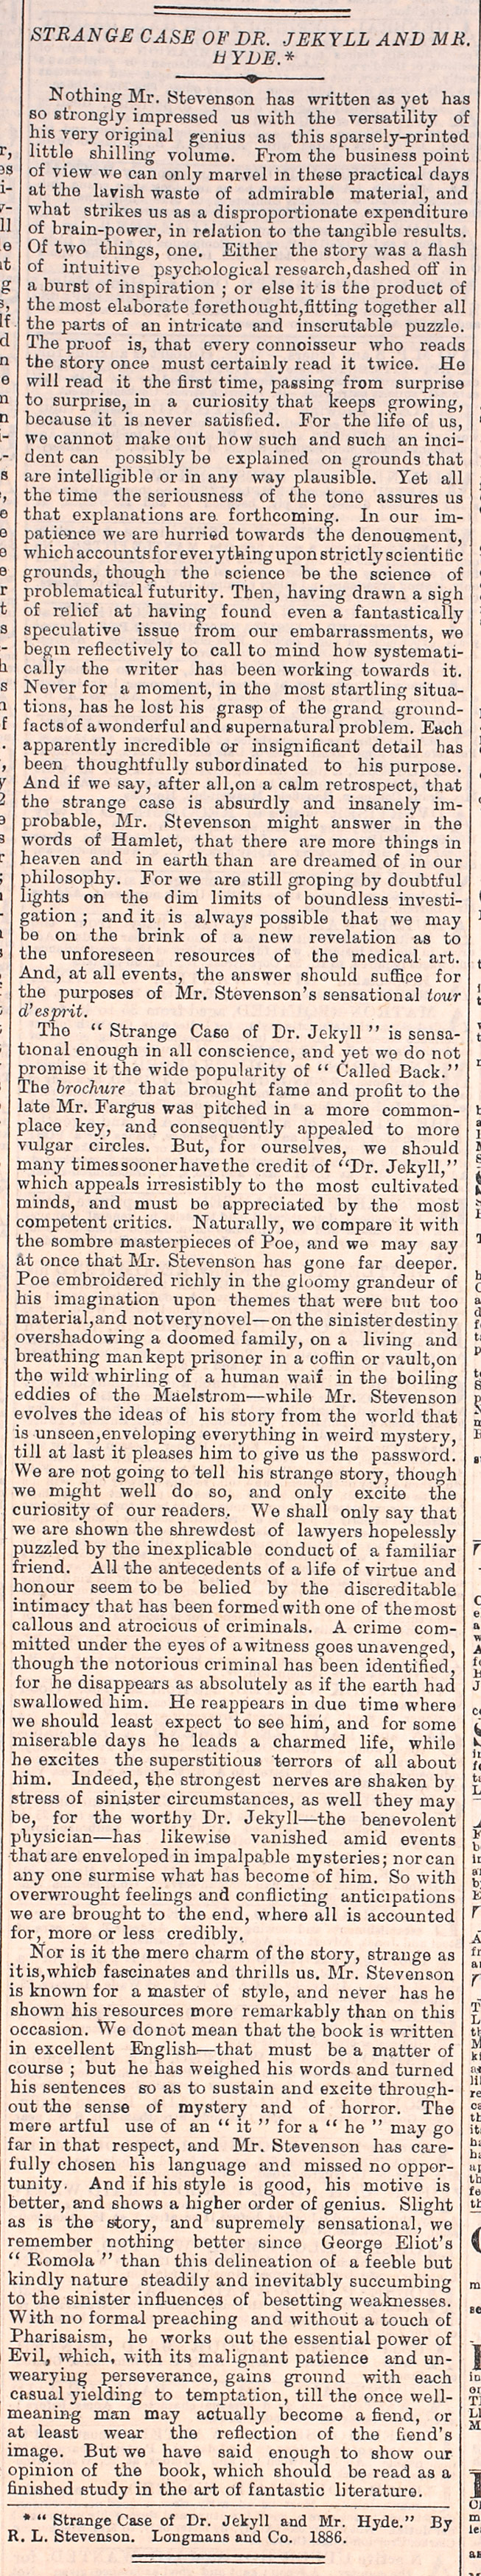 The Times review of Strange Case of Dr Jekyll and Mr Hyde